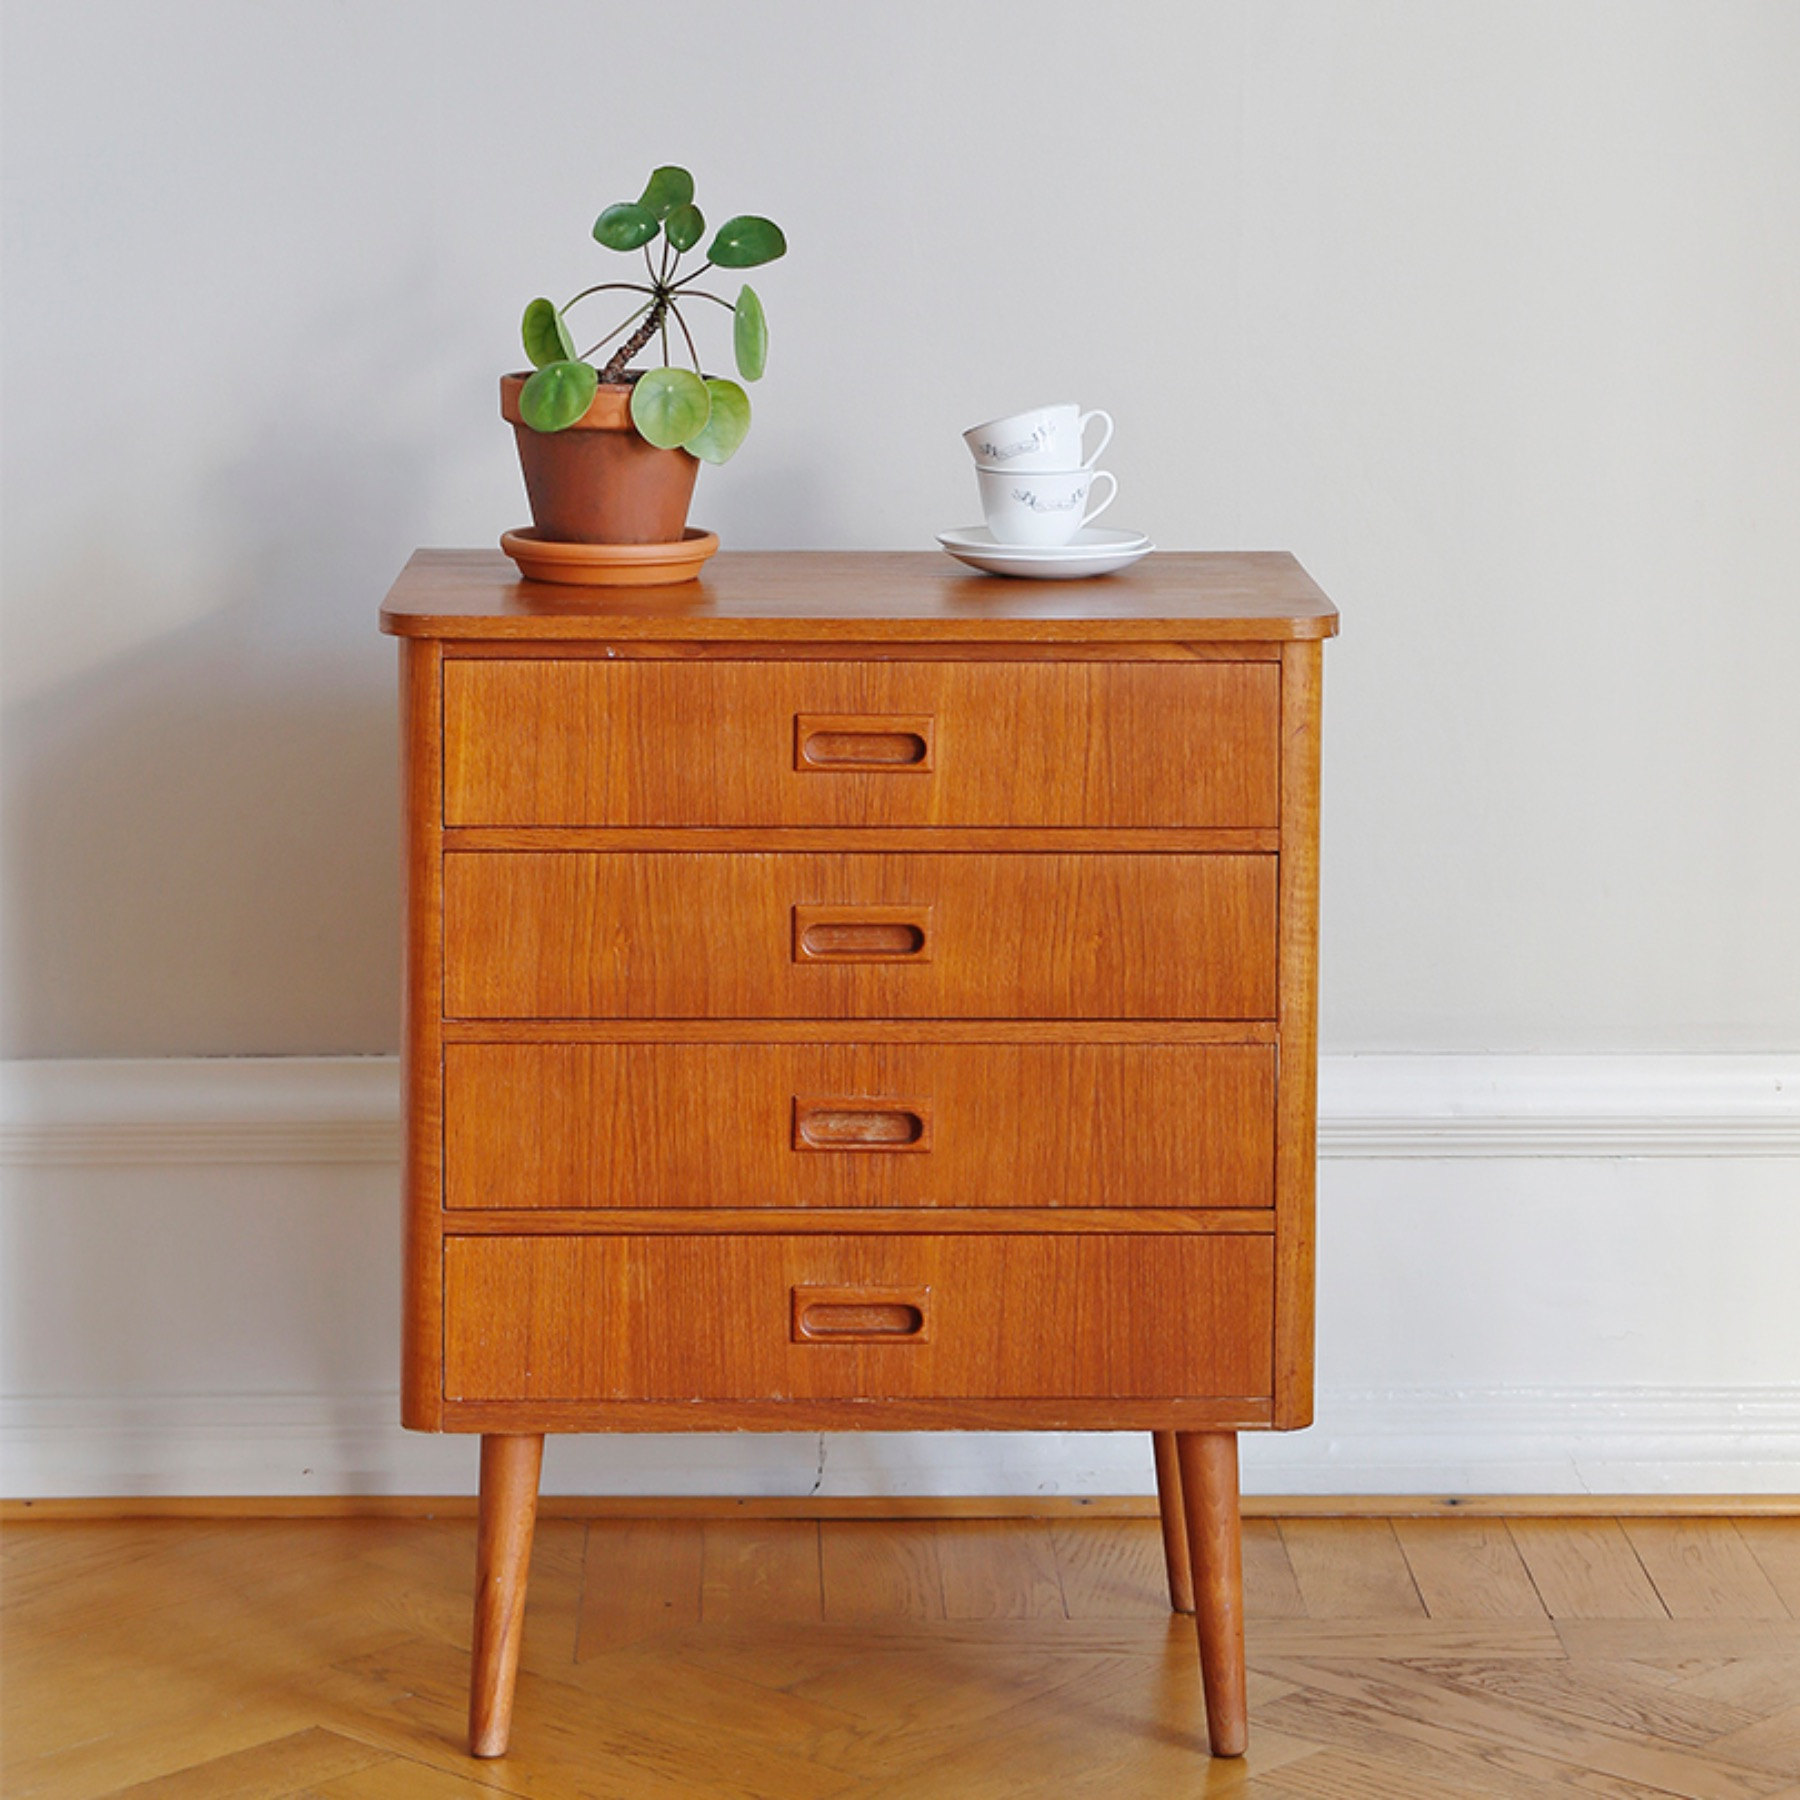 Danish Retro drawer